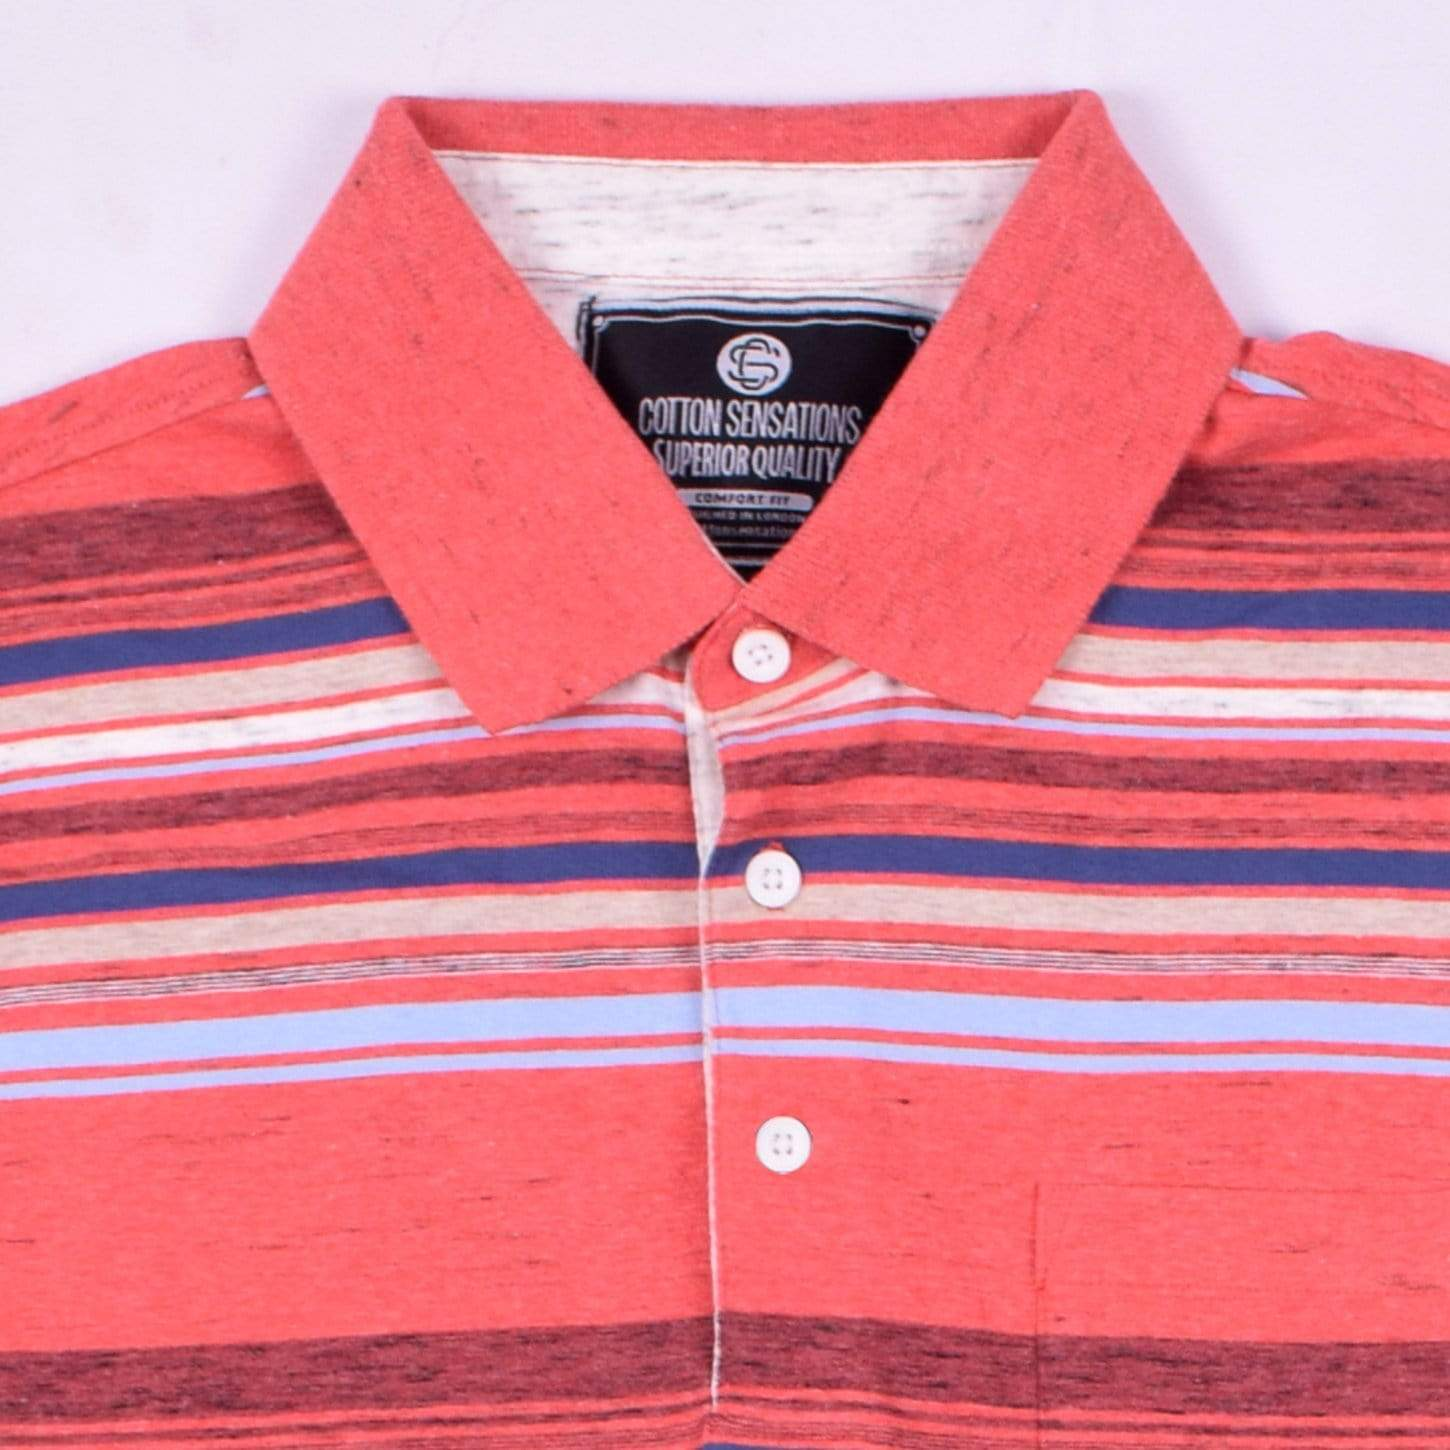 cotton sensations Men's Polo Shirt Coral / S Cotton Sensations Dyed Yarn Eng Striped Jersey Pocket Polo Shirt